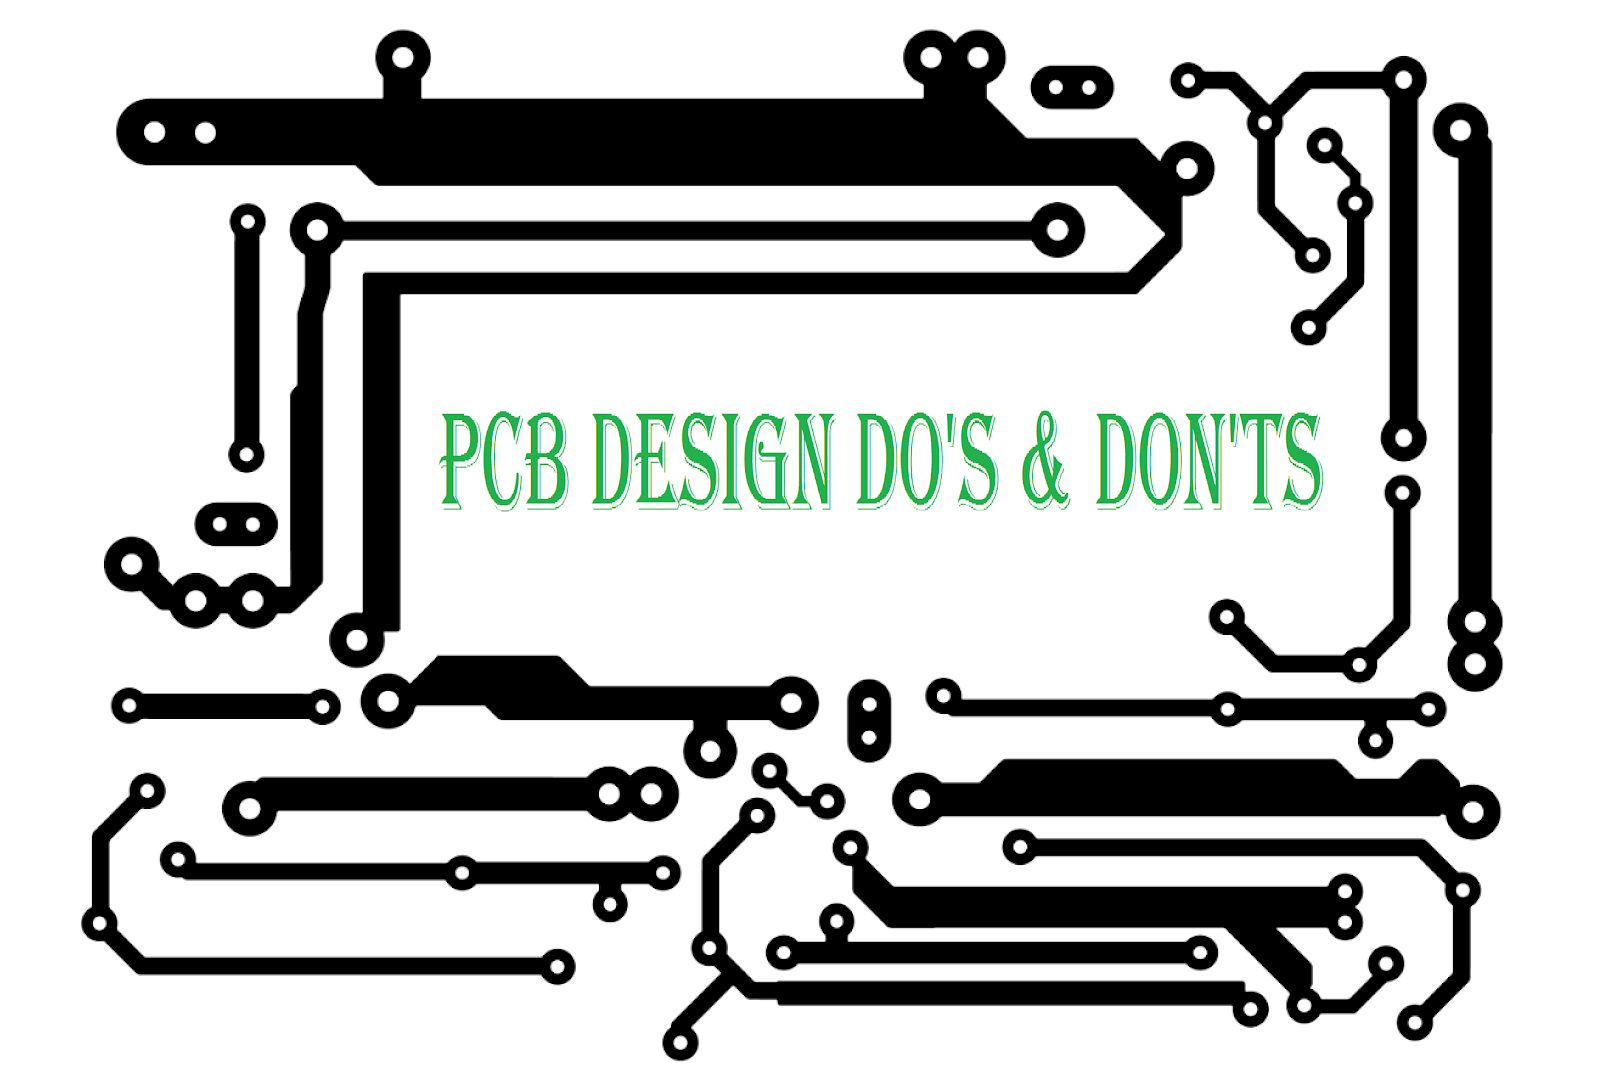 pcb-design-dos-and-donts